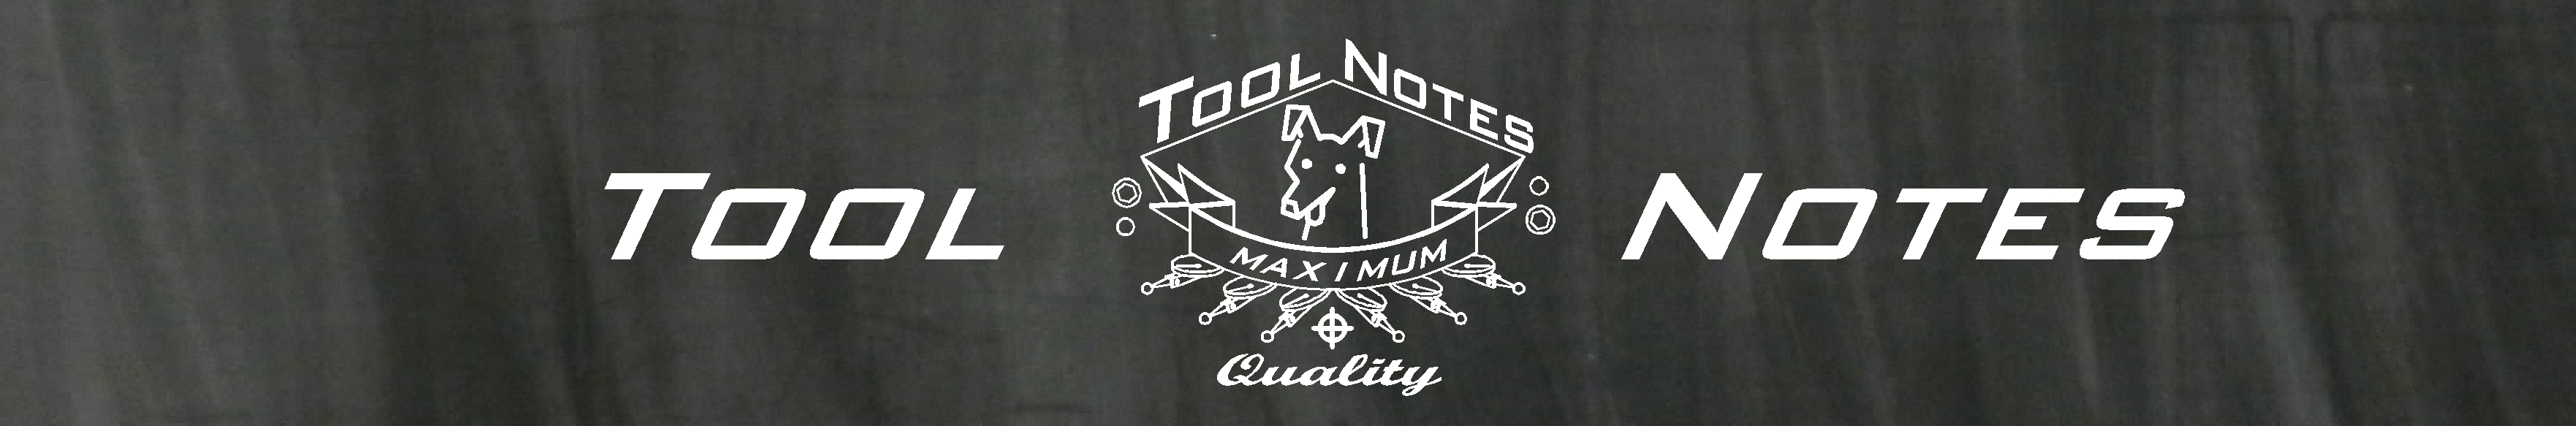 ToolNotes